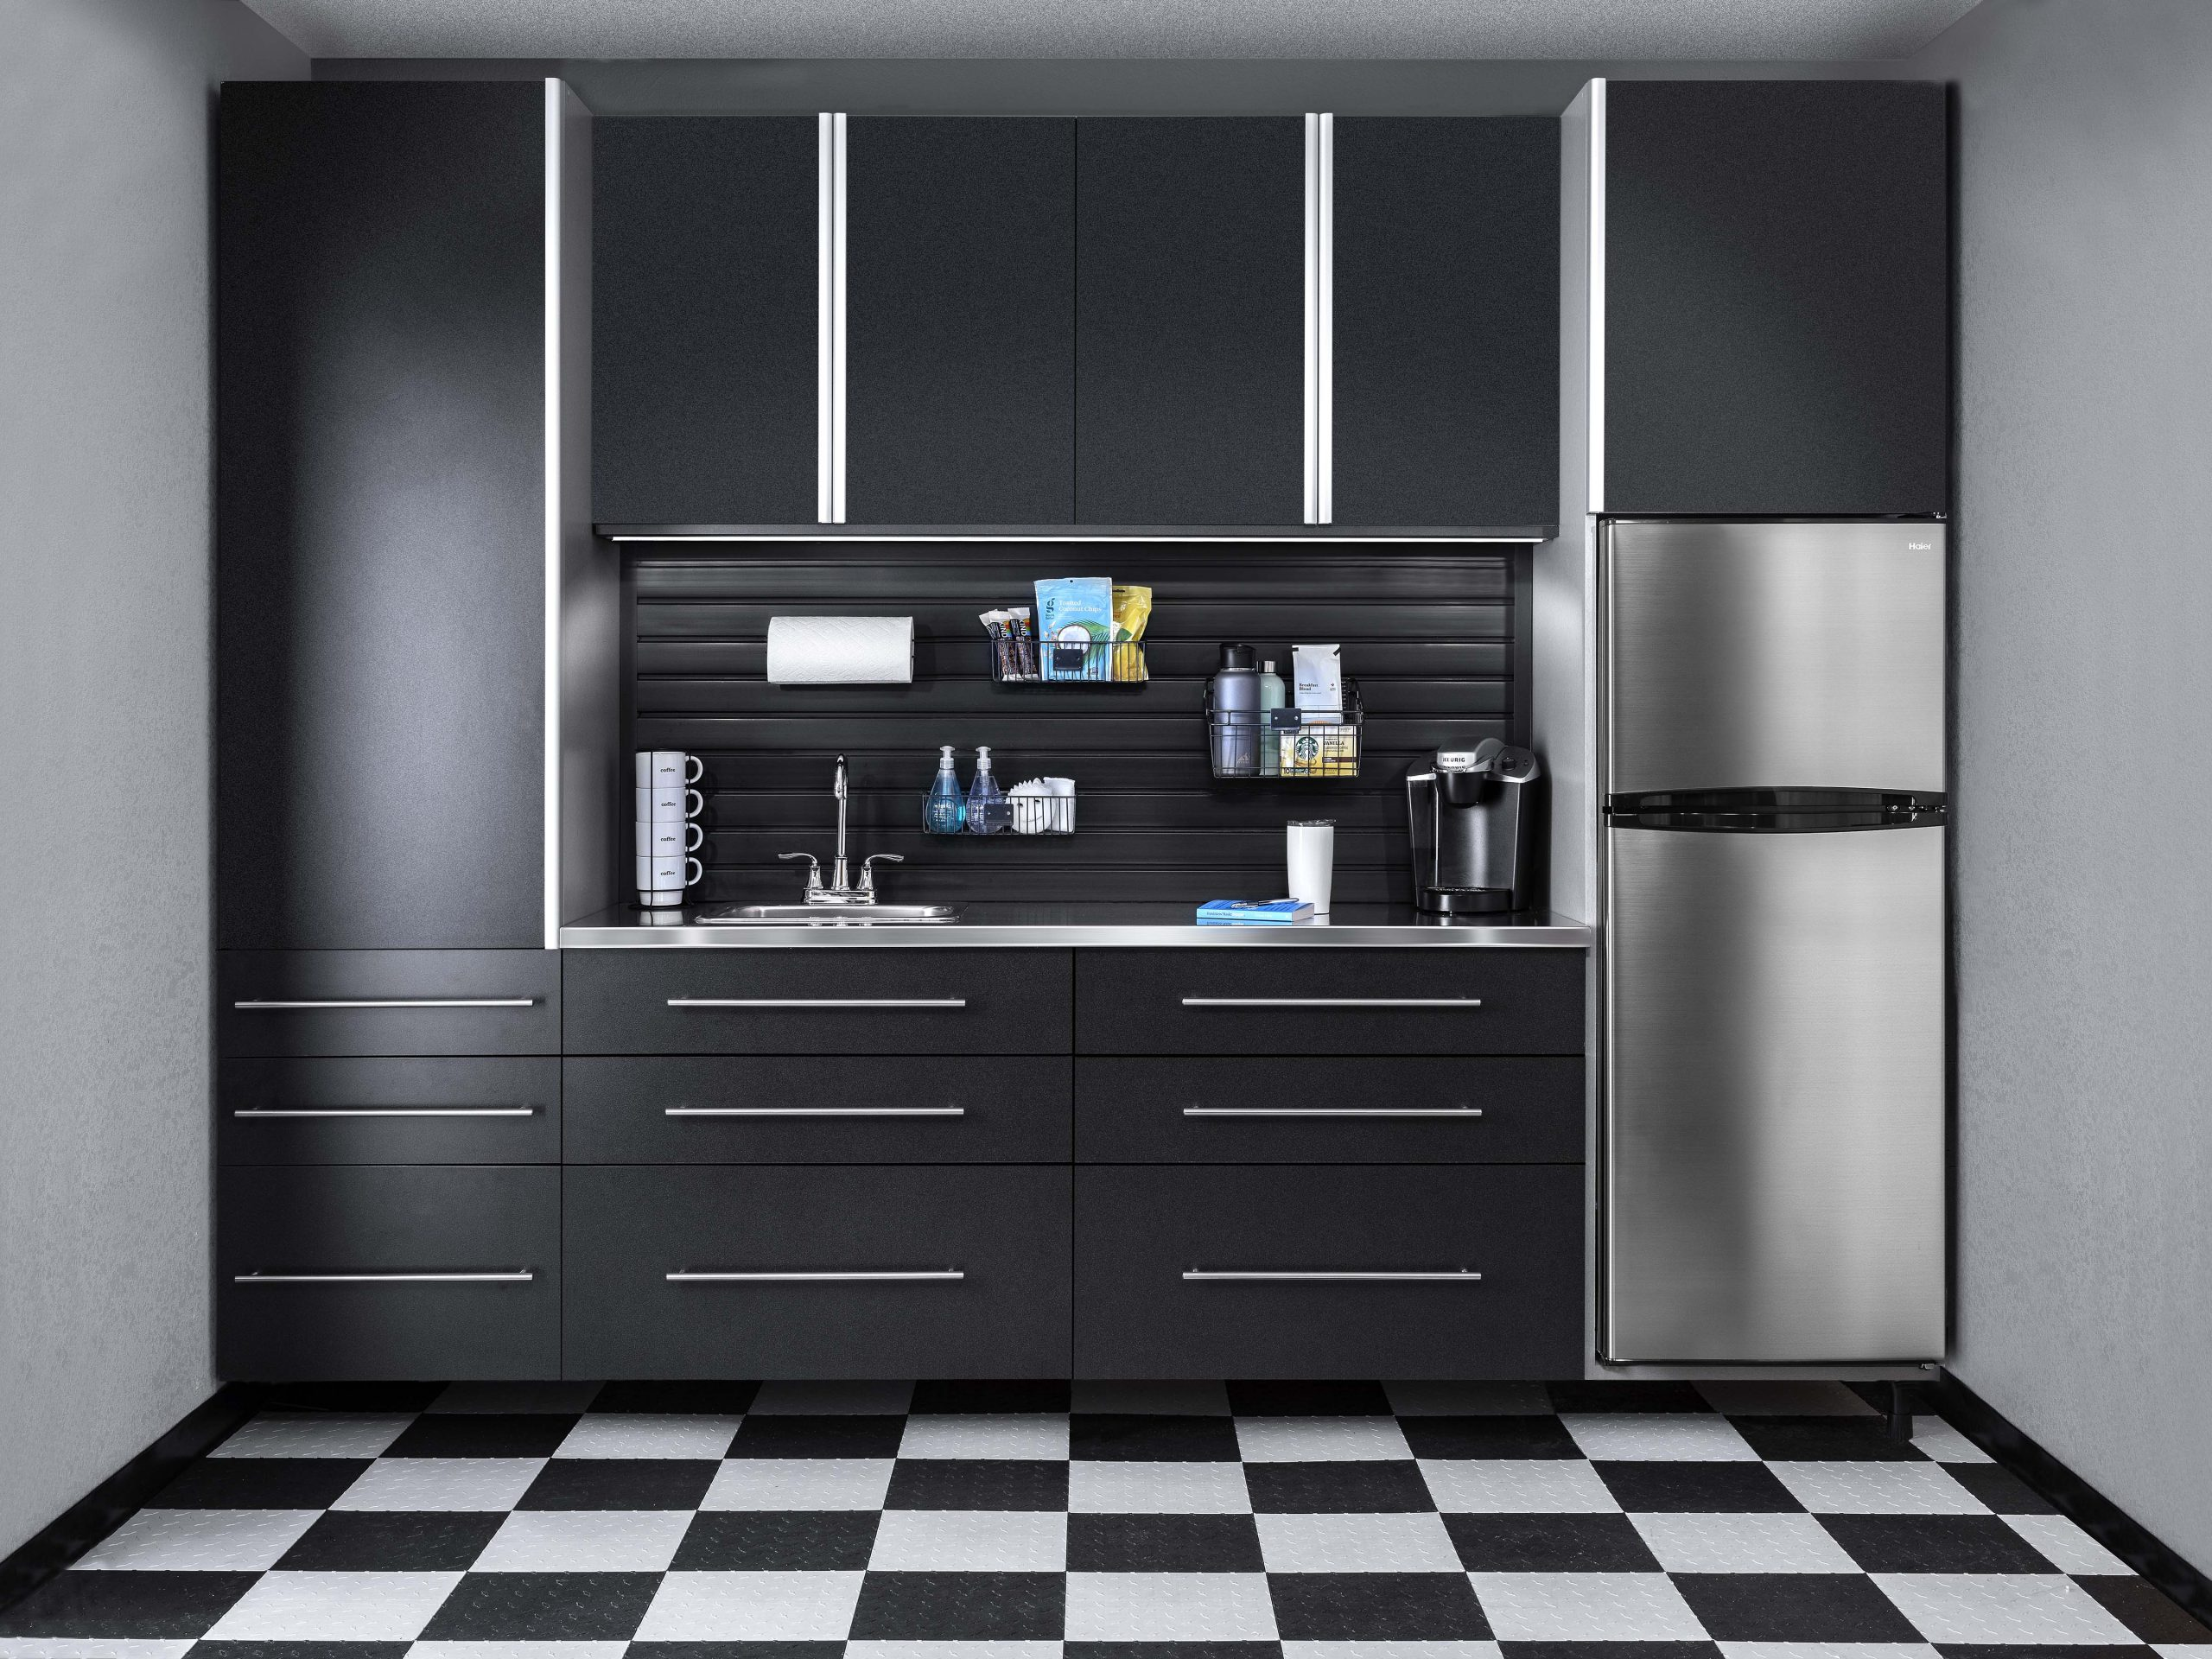 Basalt Cabinets with Stainless Countertop and Swisstrax